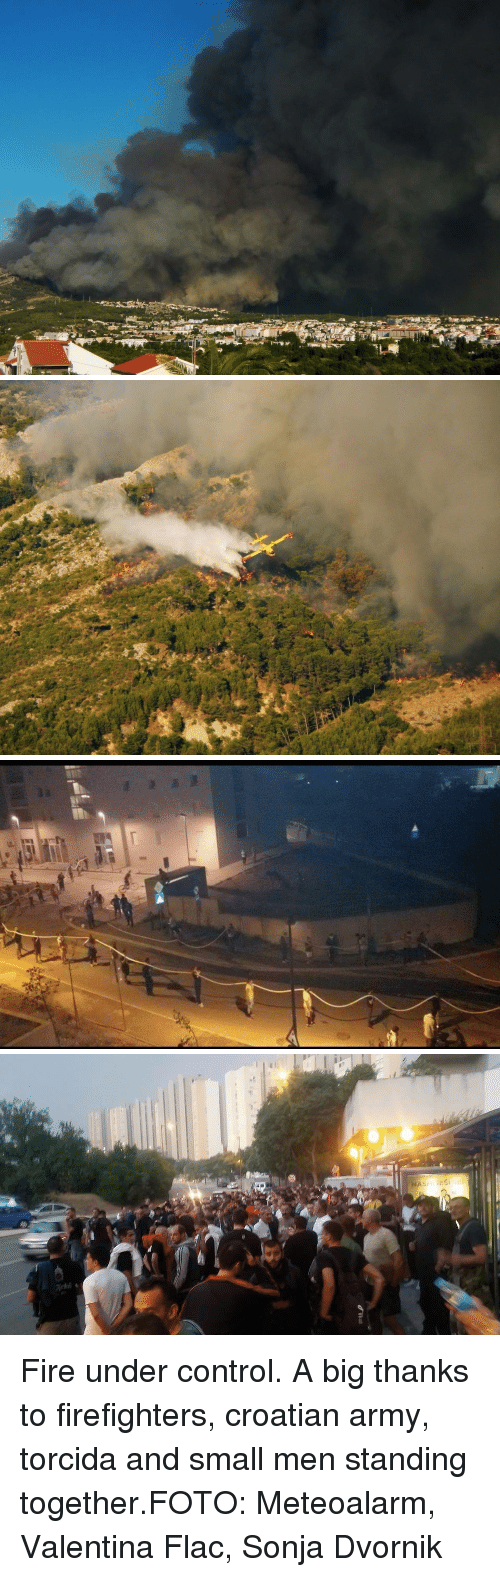 Fire, Control, and Army: Fire under control. A big thanks to firefighters, croatian army, torcida and small men standing together.FOTO: Meteoalarm, Valentina Flac, Sonja Dvornik